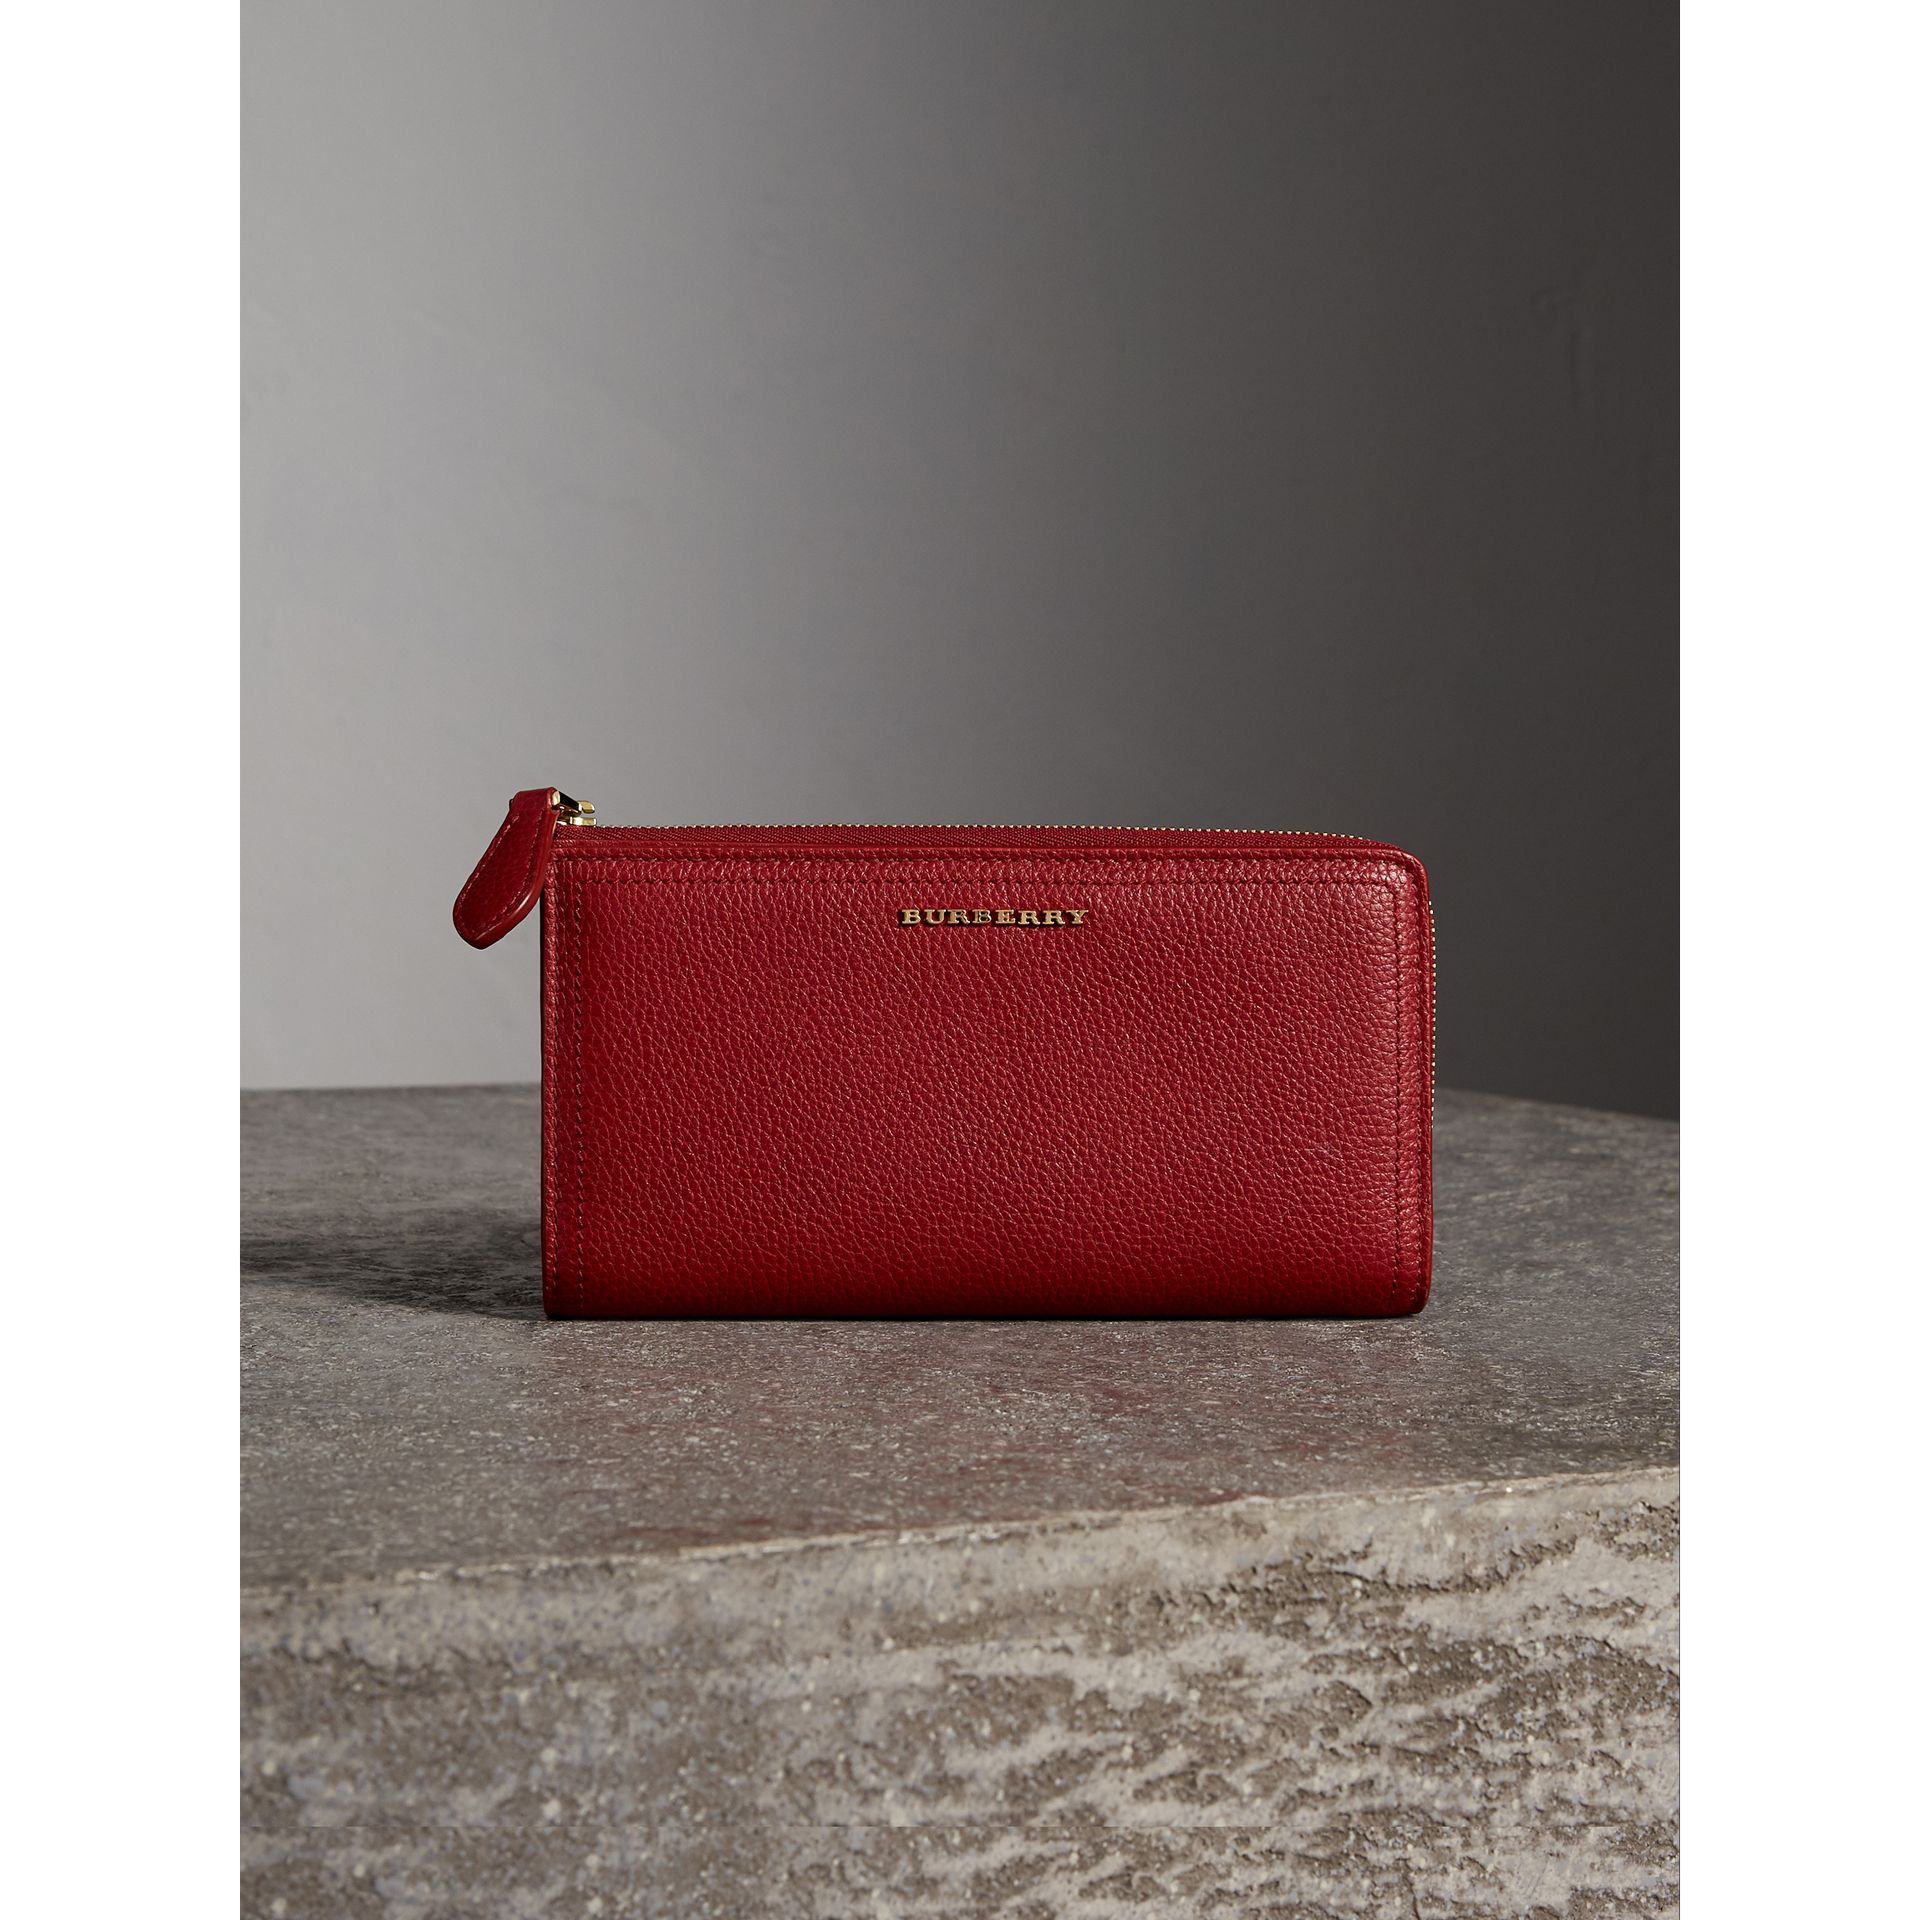 Grainy Leather Ziparound Wallet in Parade Red - Women | Burberry - gallery image 4